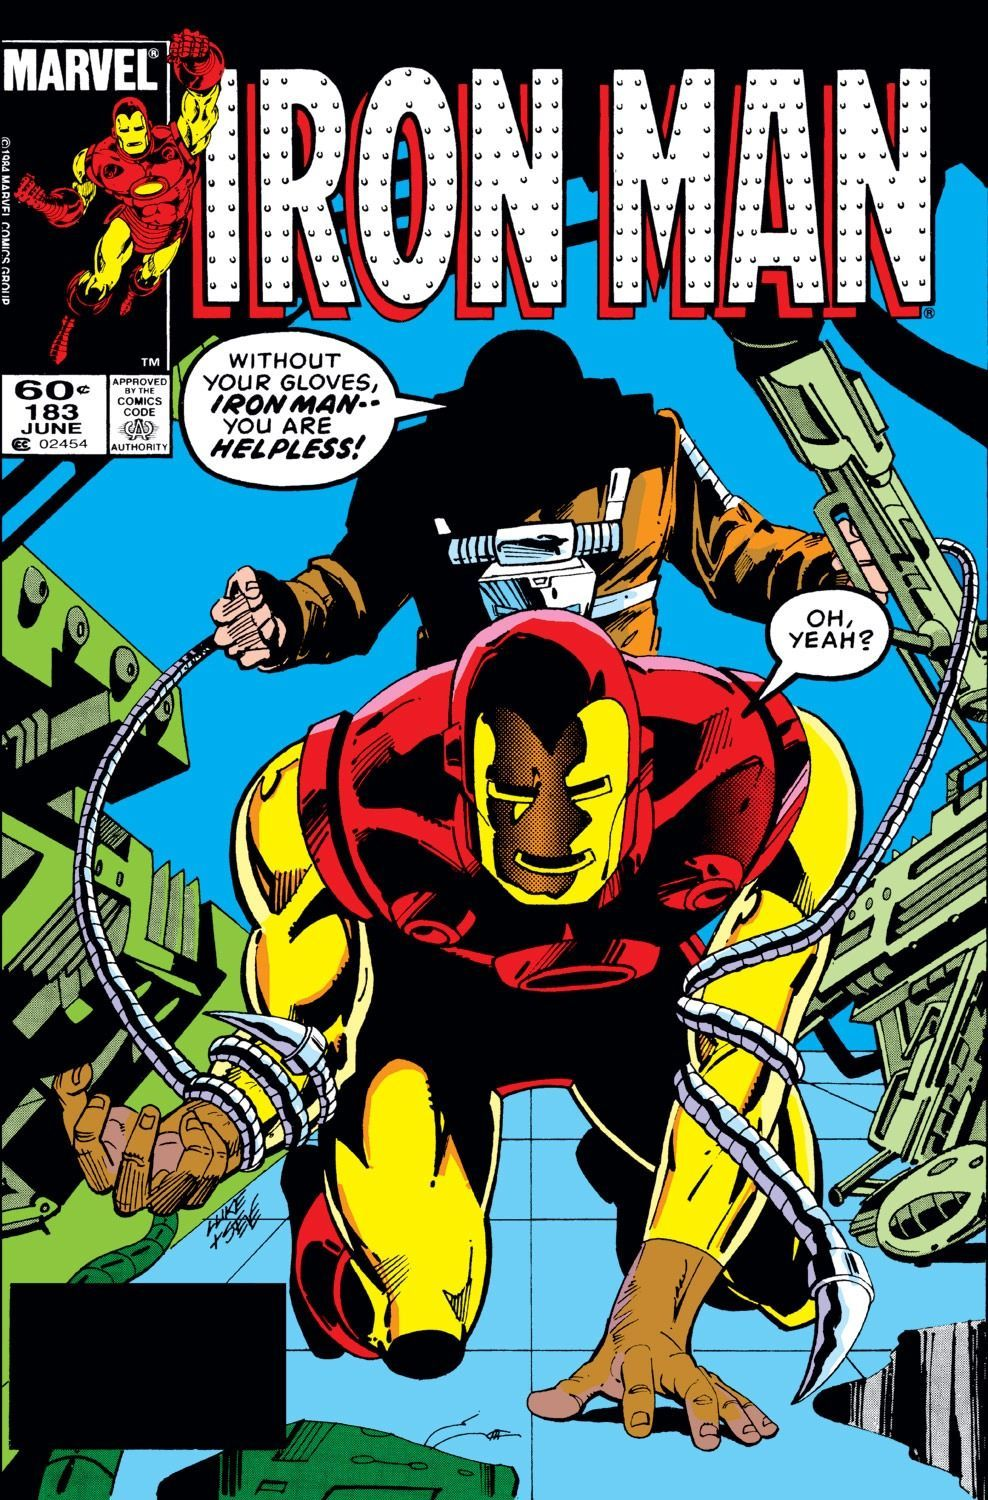 Iron Man (1968) #183 (@Marvel)